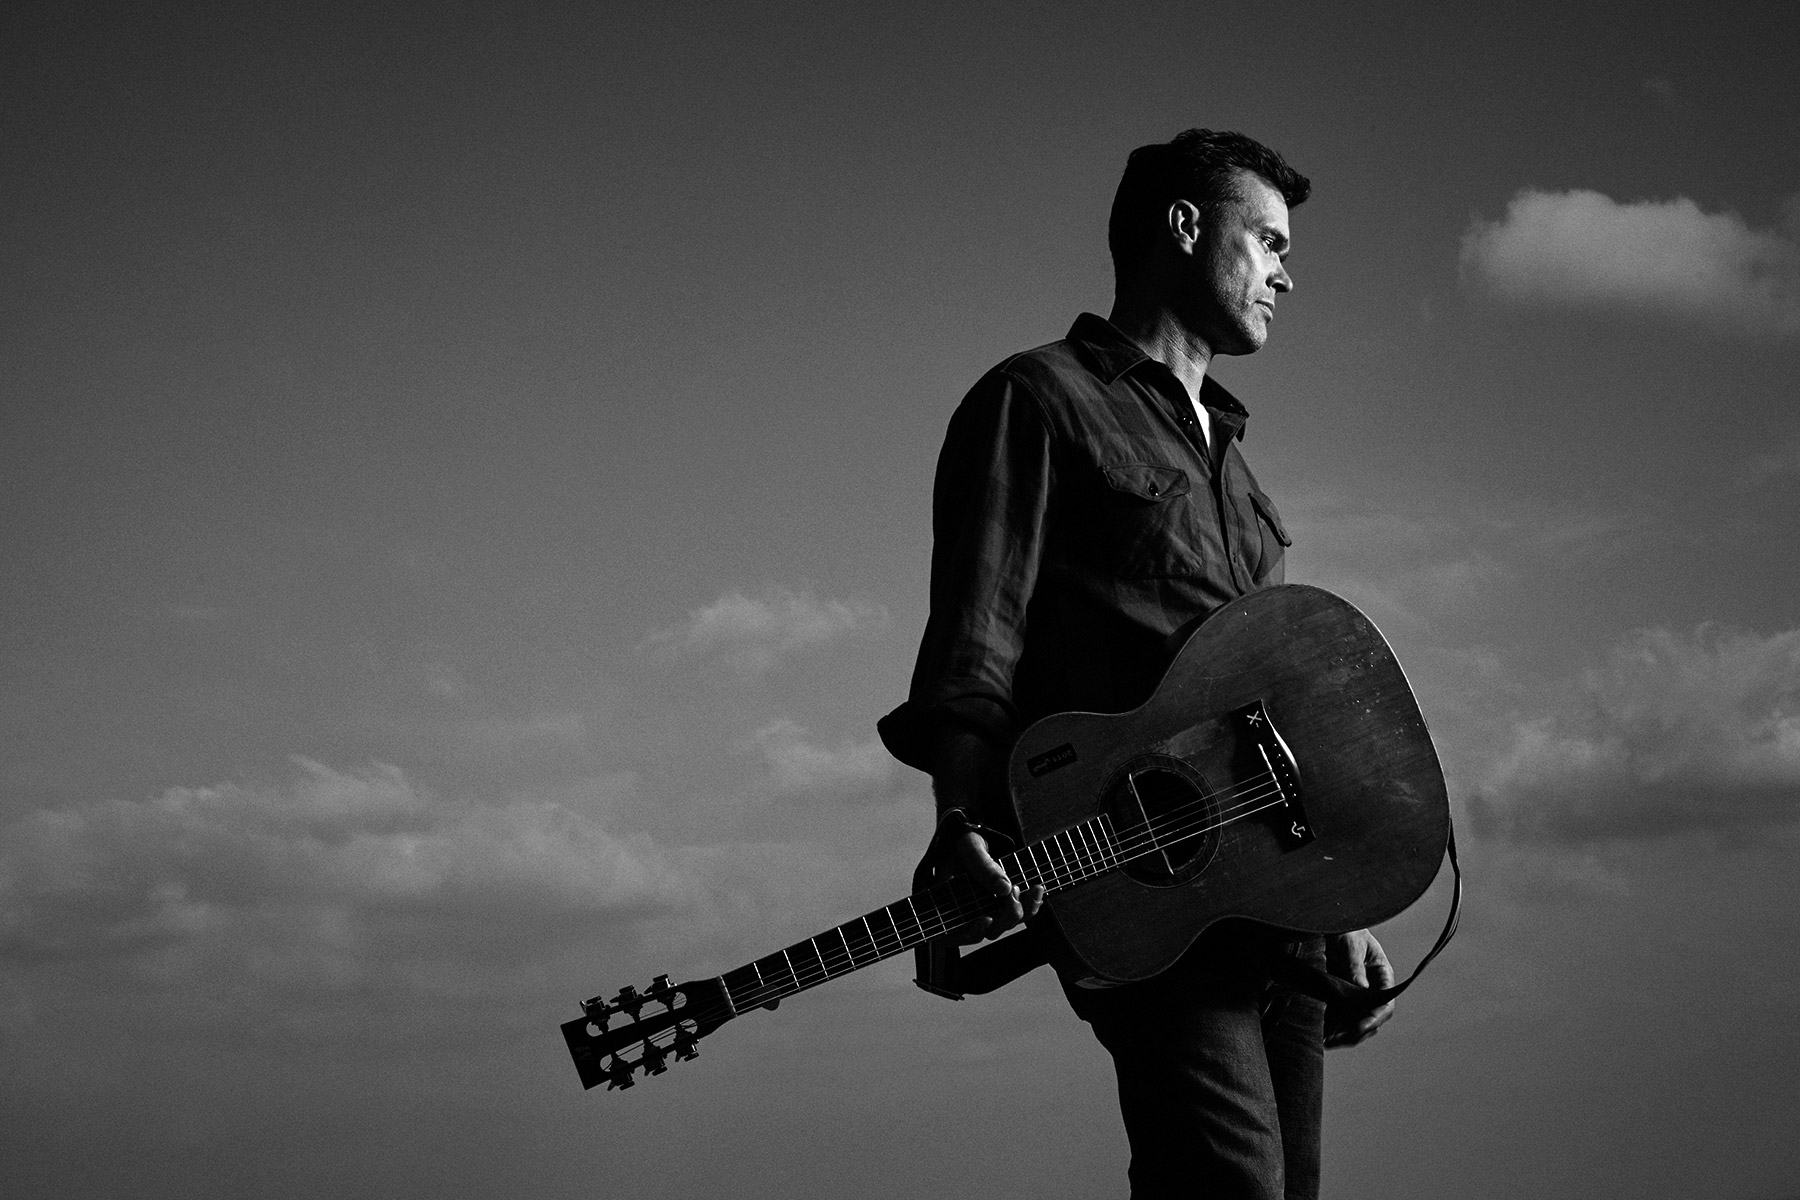 Portrait of Corb Lund photographed by Scott Council